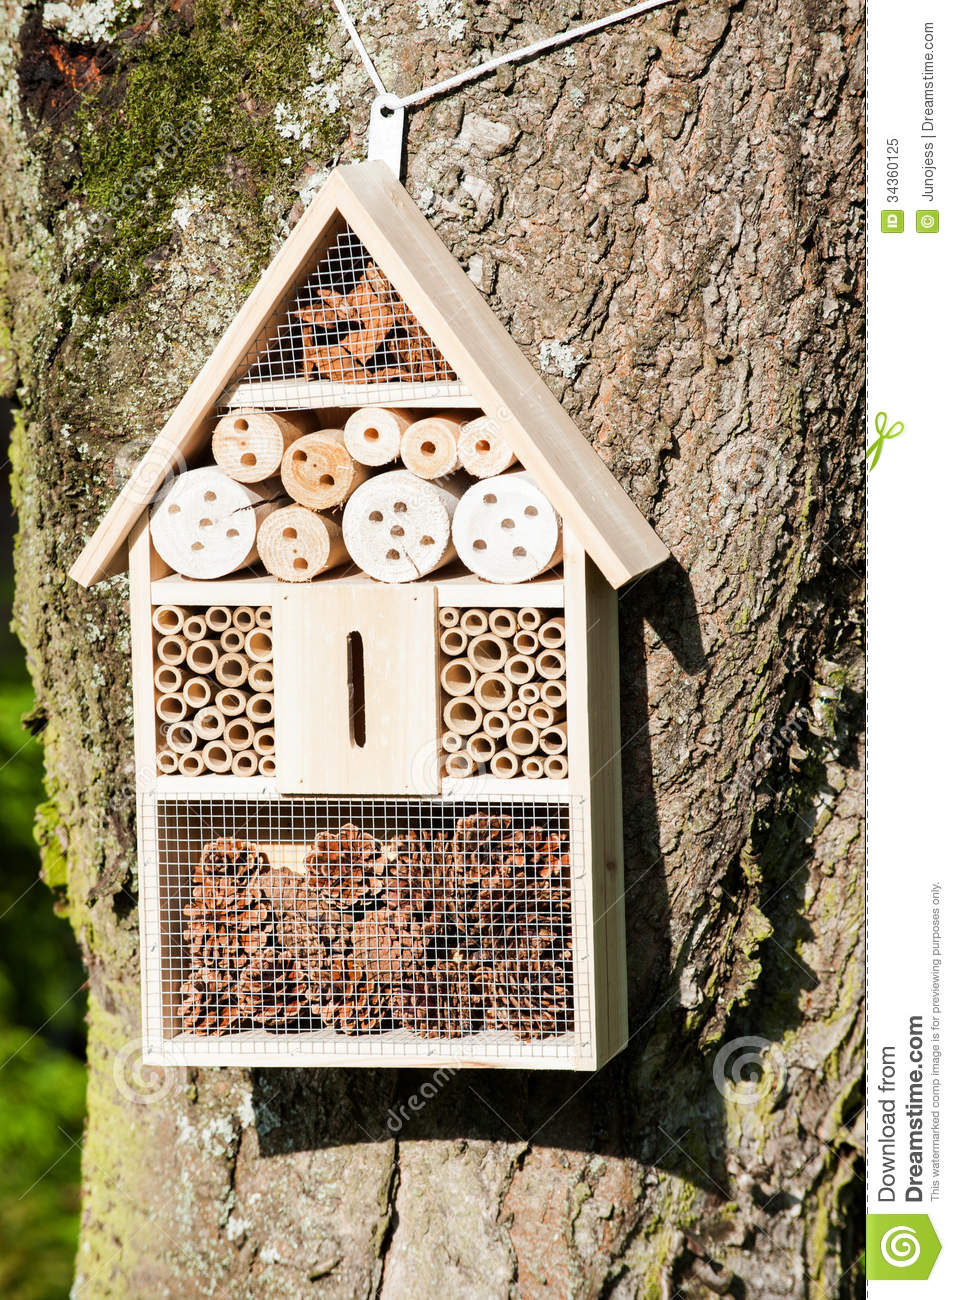 Insect Hotel Royalty Free Stock Photo - Image: 34360125